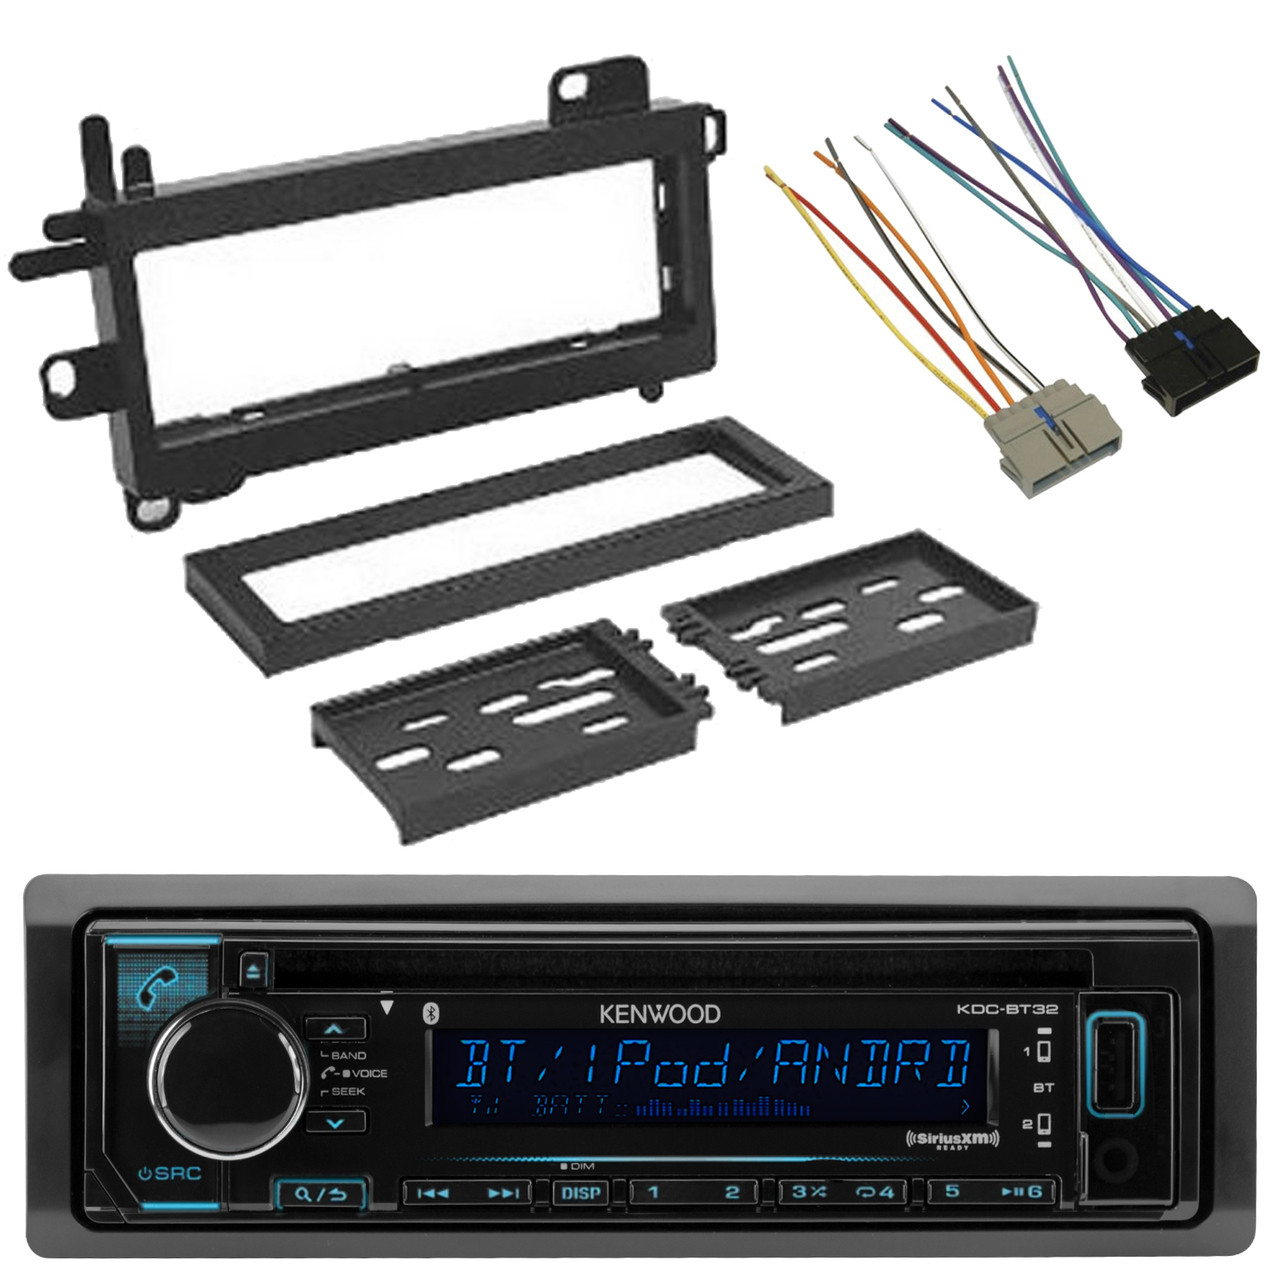 kenwood din cd mp3 bluetooth car stereo receiver scosche wire harness dash kit road entertainment [ 1280 x 1280 Pixel ]